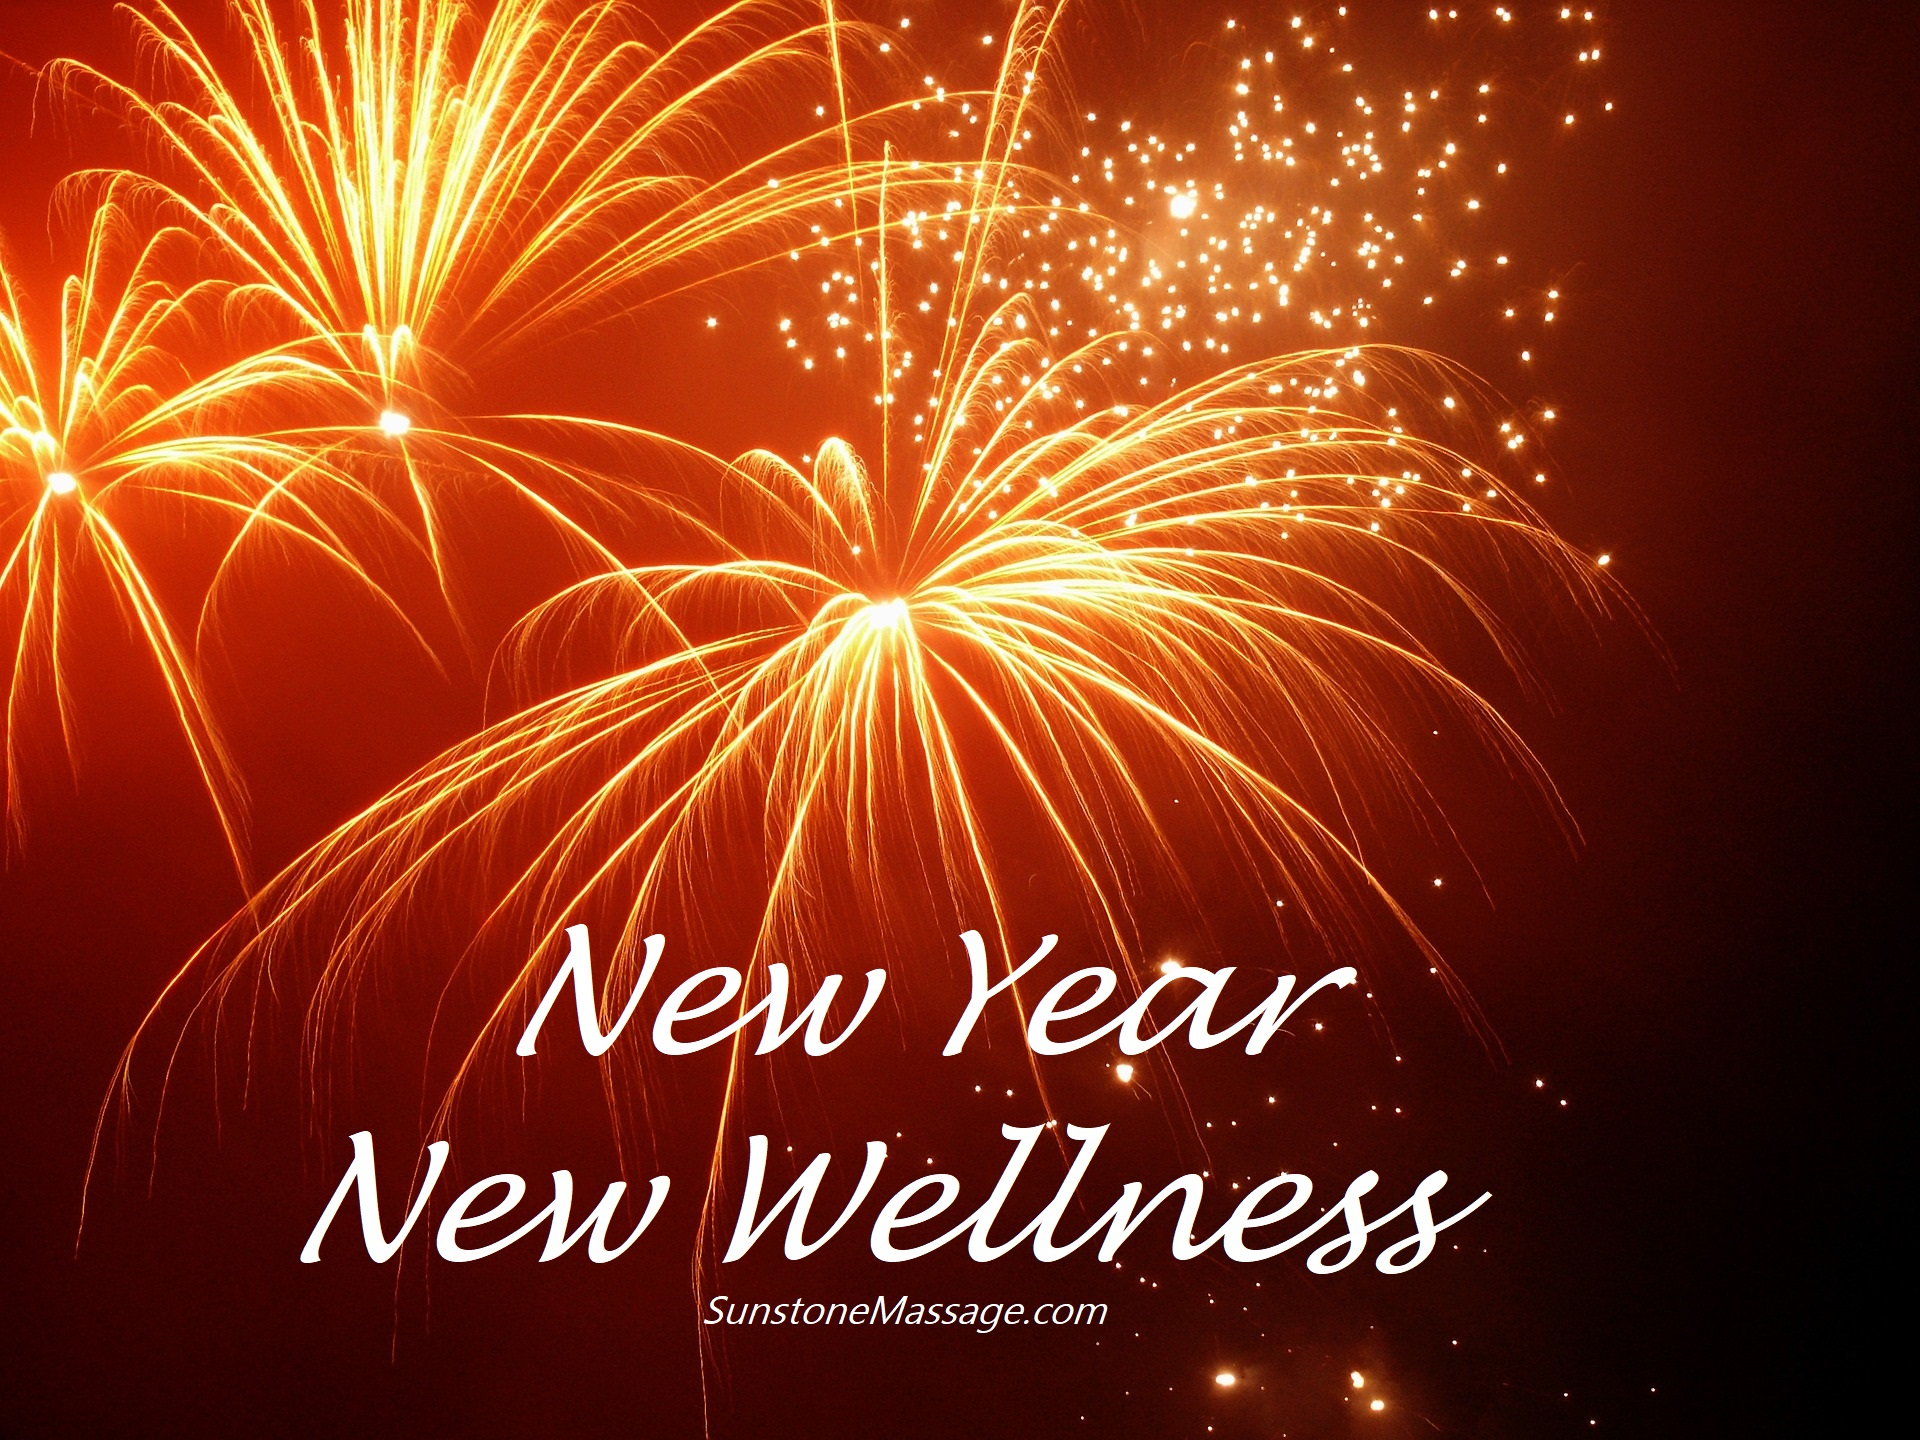 New Year New Wellness